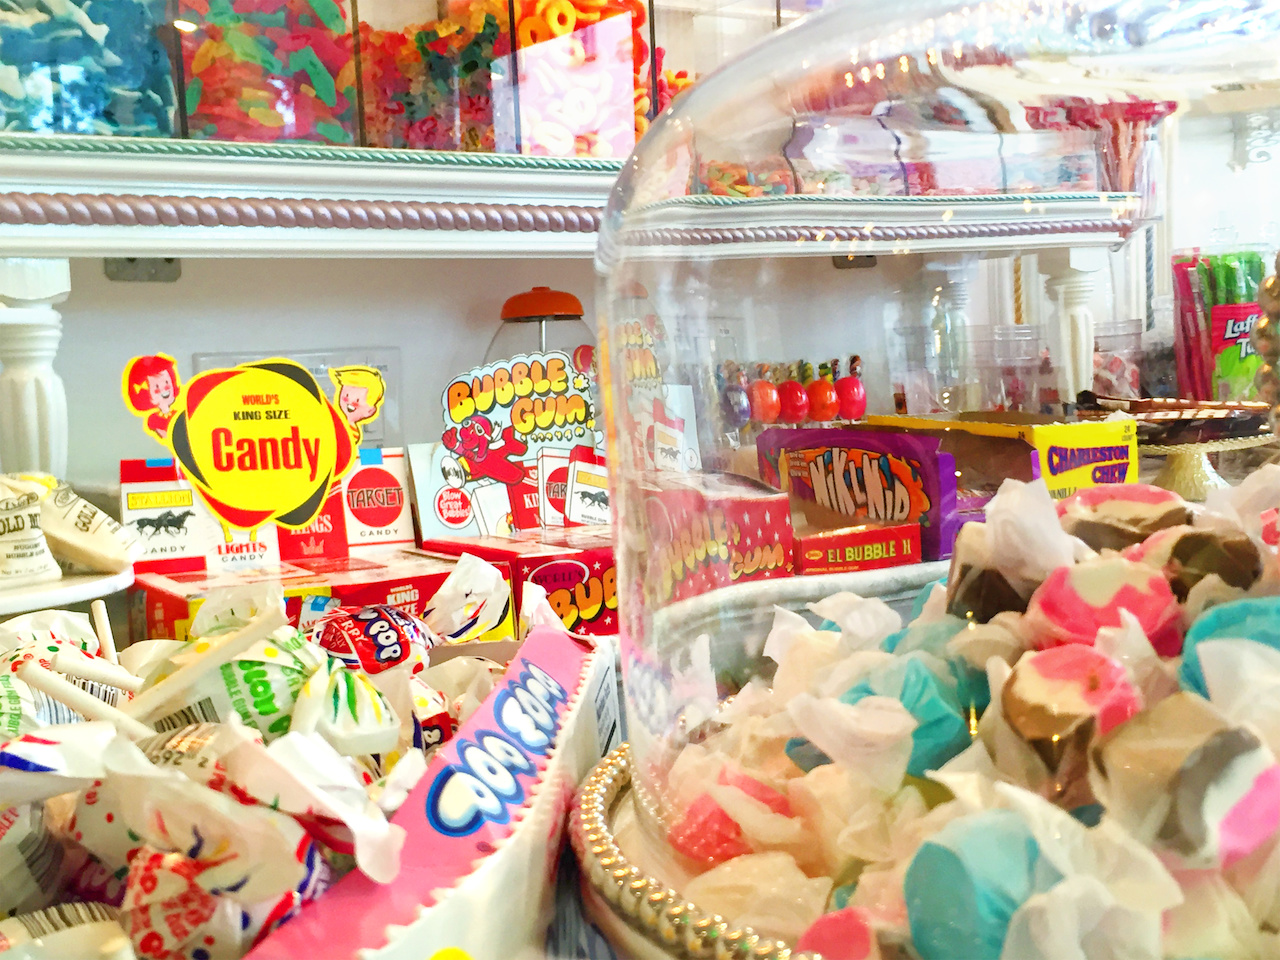 When we visited, the candy counter at Rockwell's was just getting stocked.